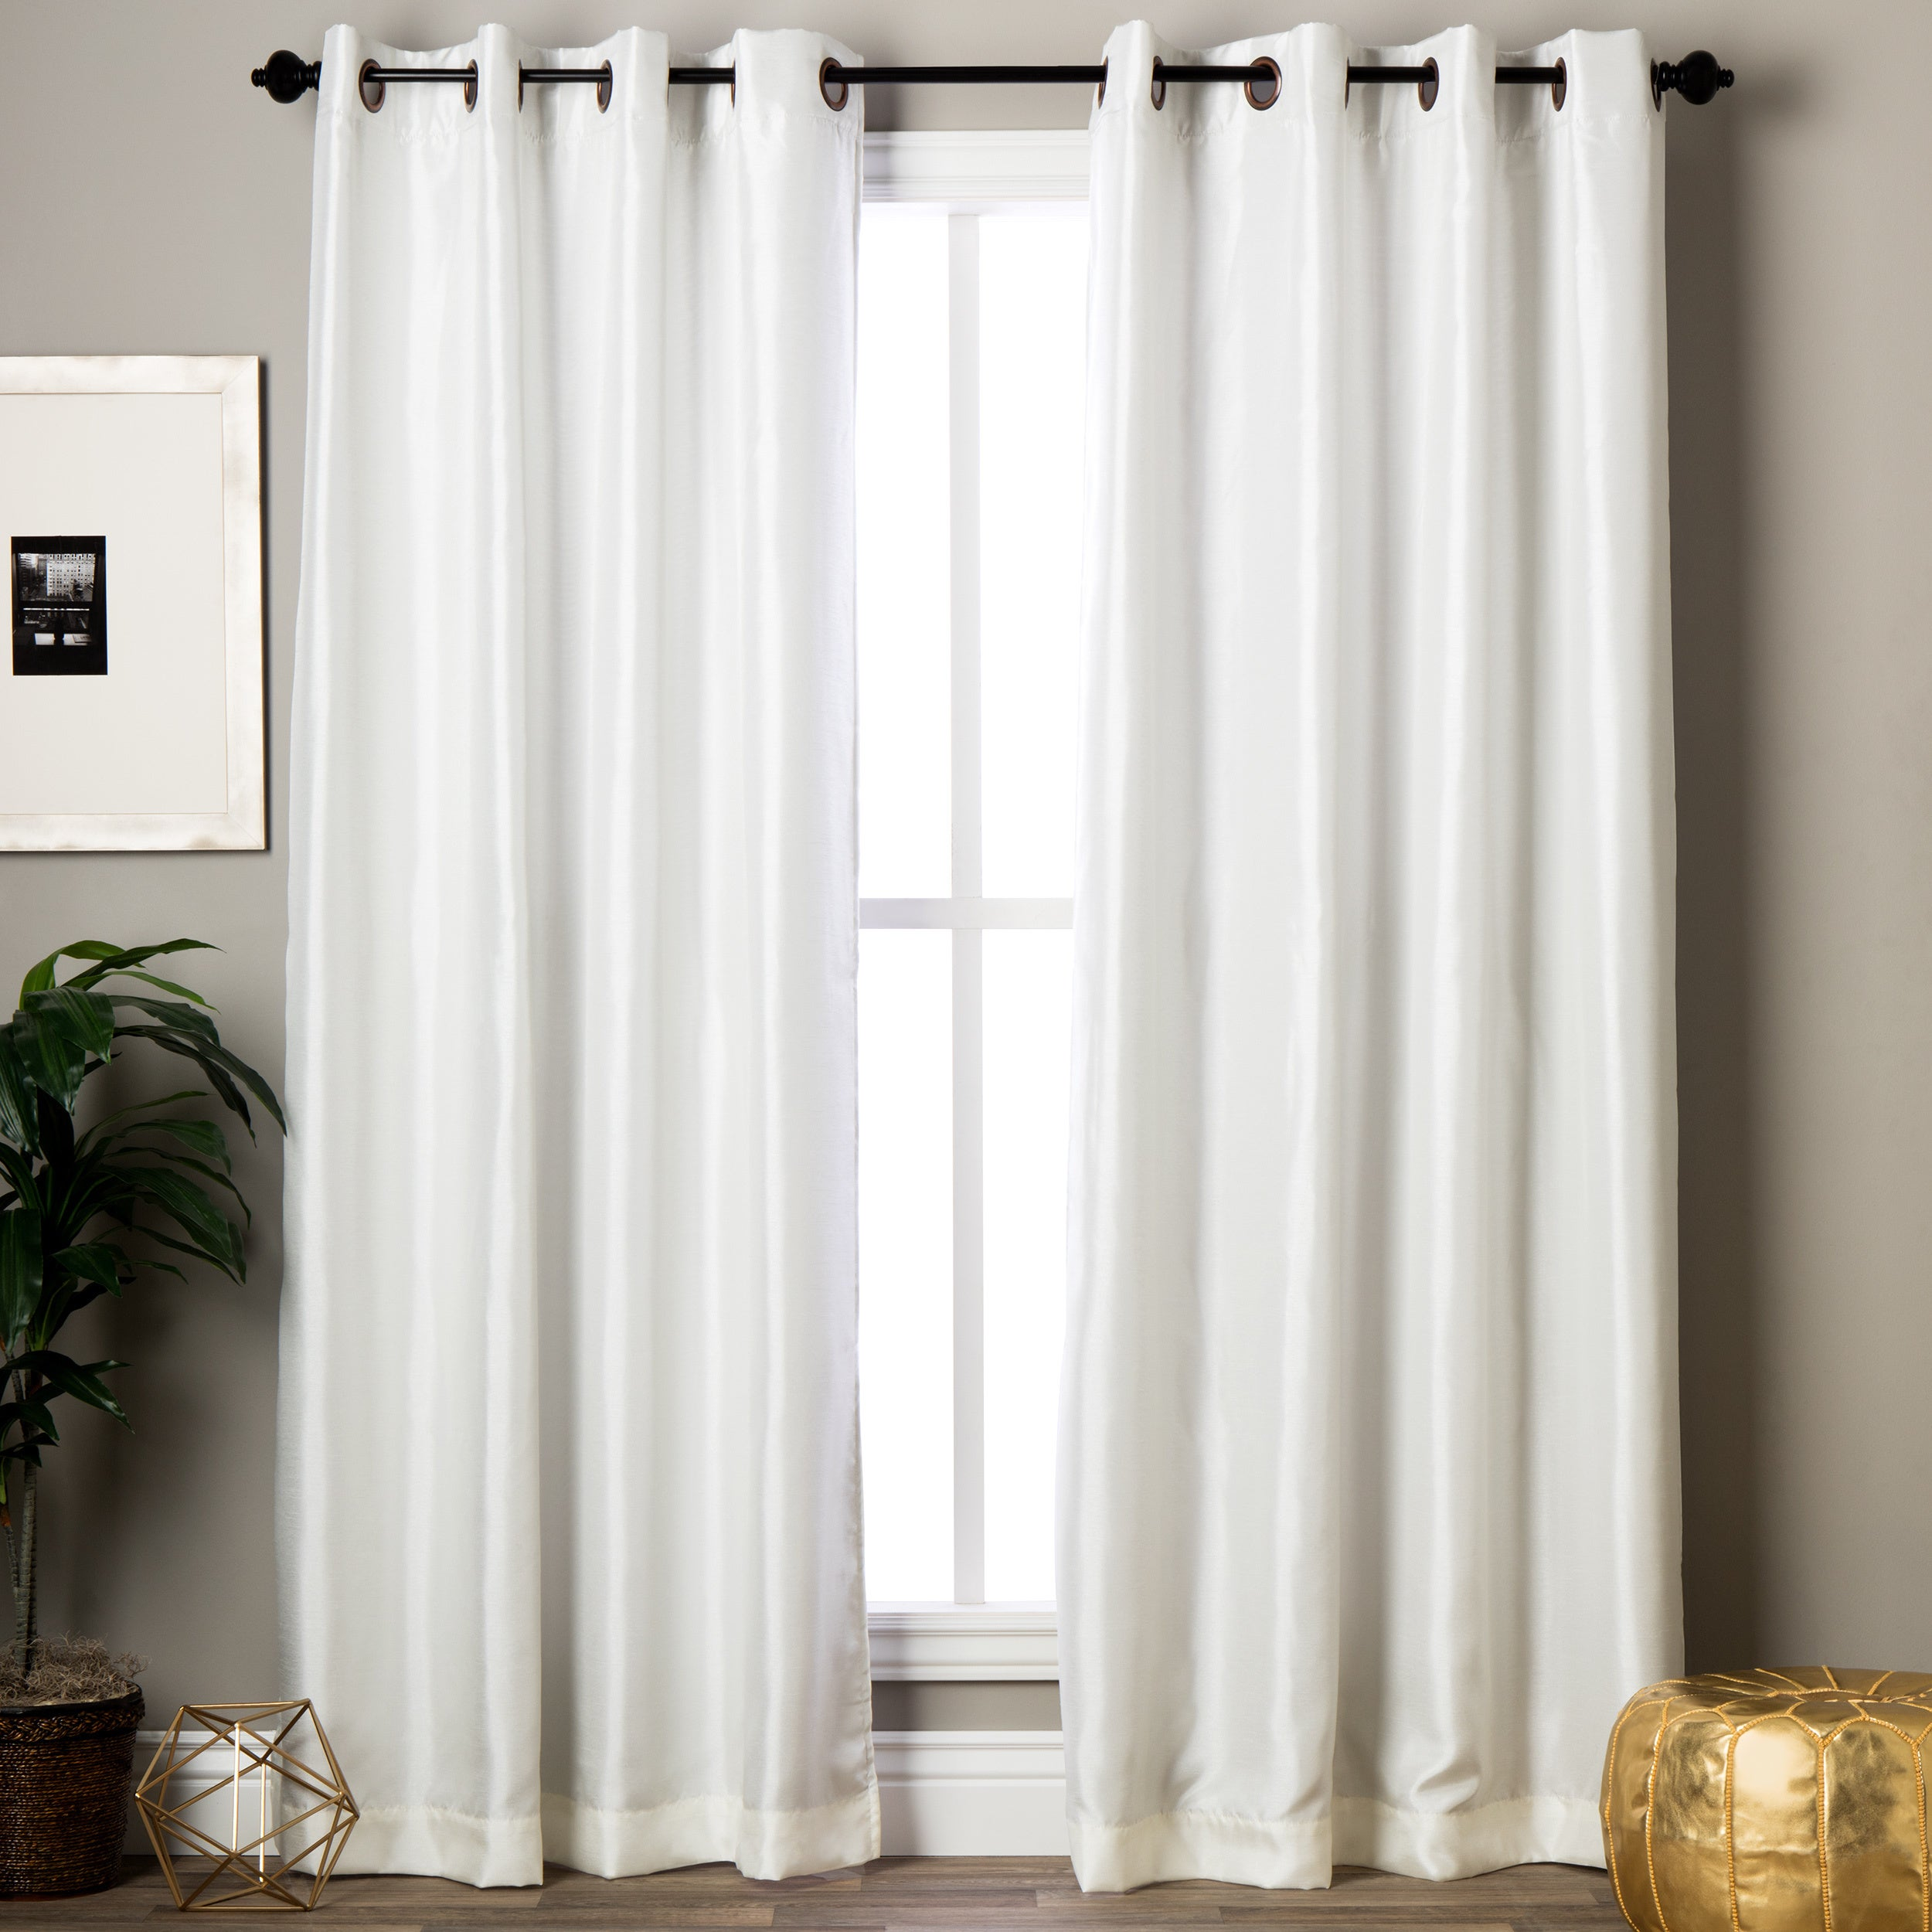 overstock home jacquard set pocket collection w panel free today garden curtains double with clayton inch shipping valance rt product designers in rod attached pair curtain of